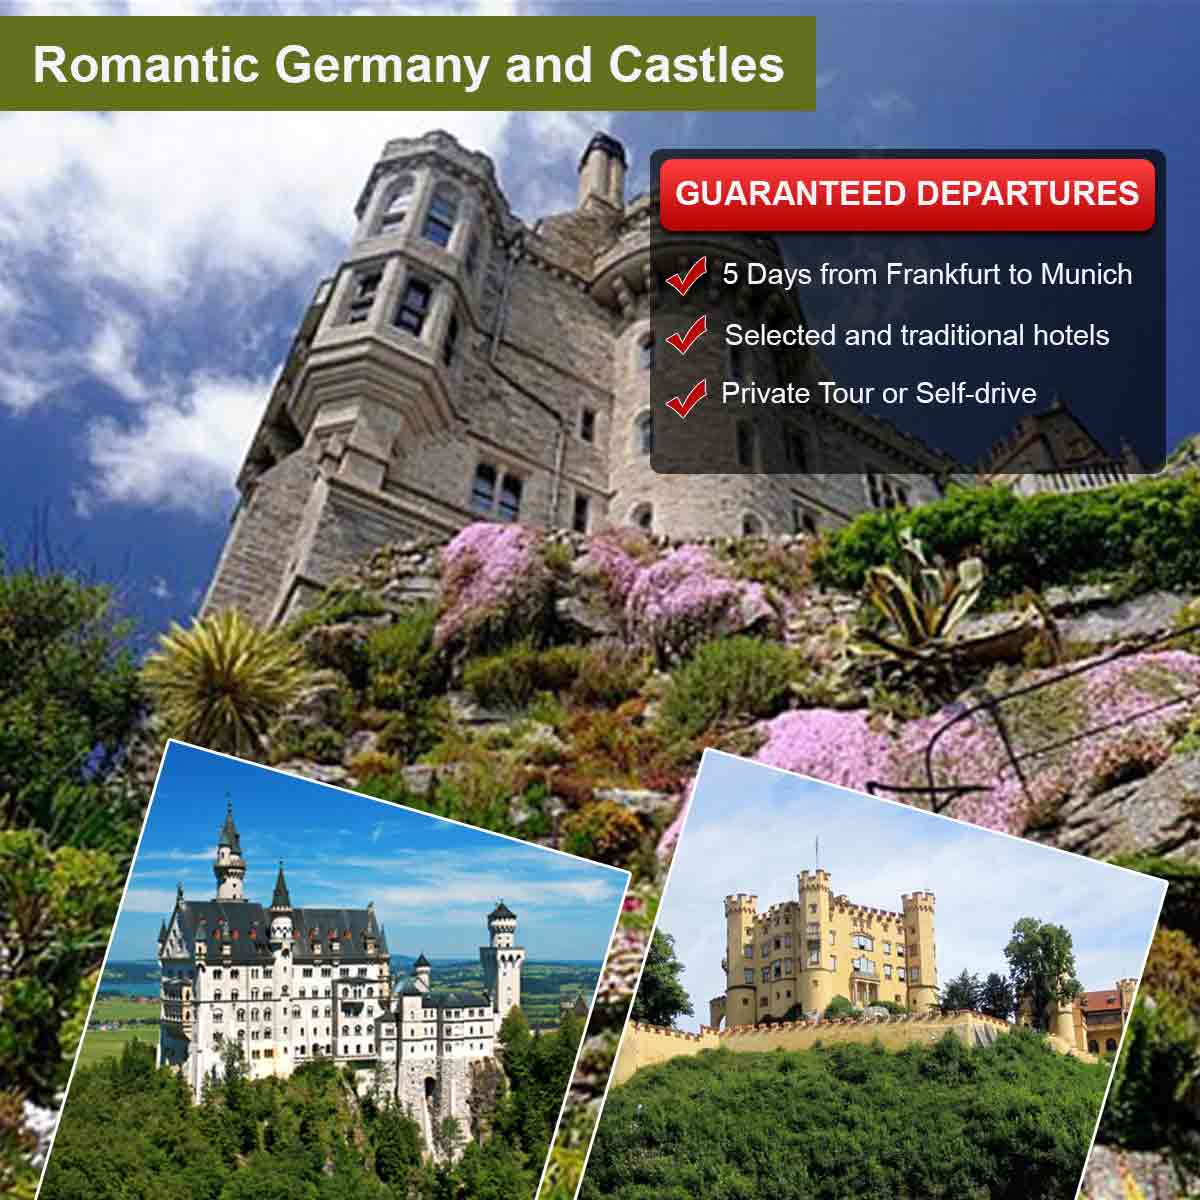 Romantic Germany and Castles